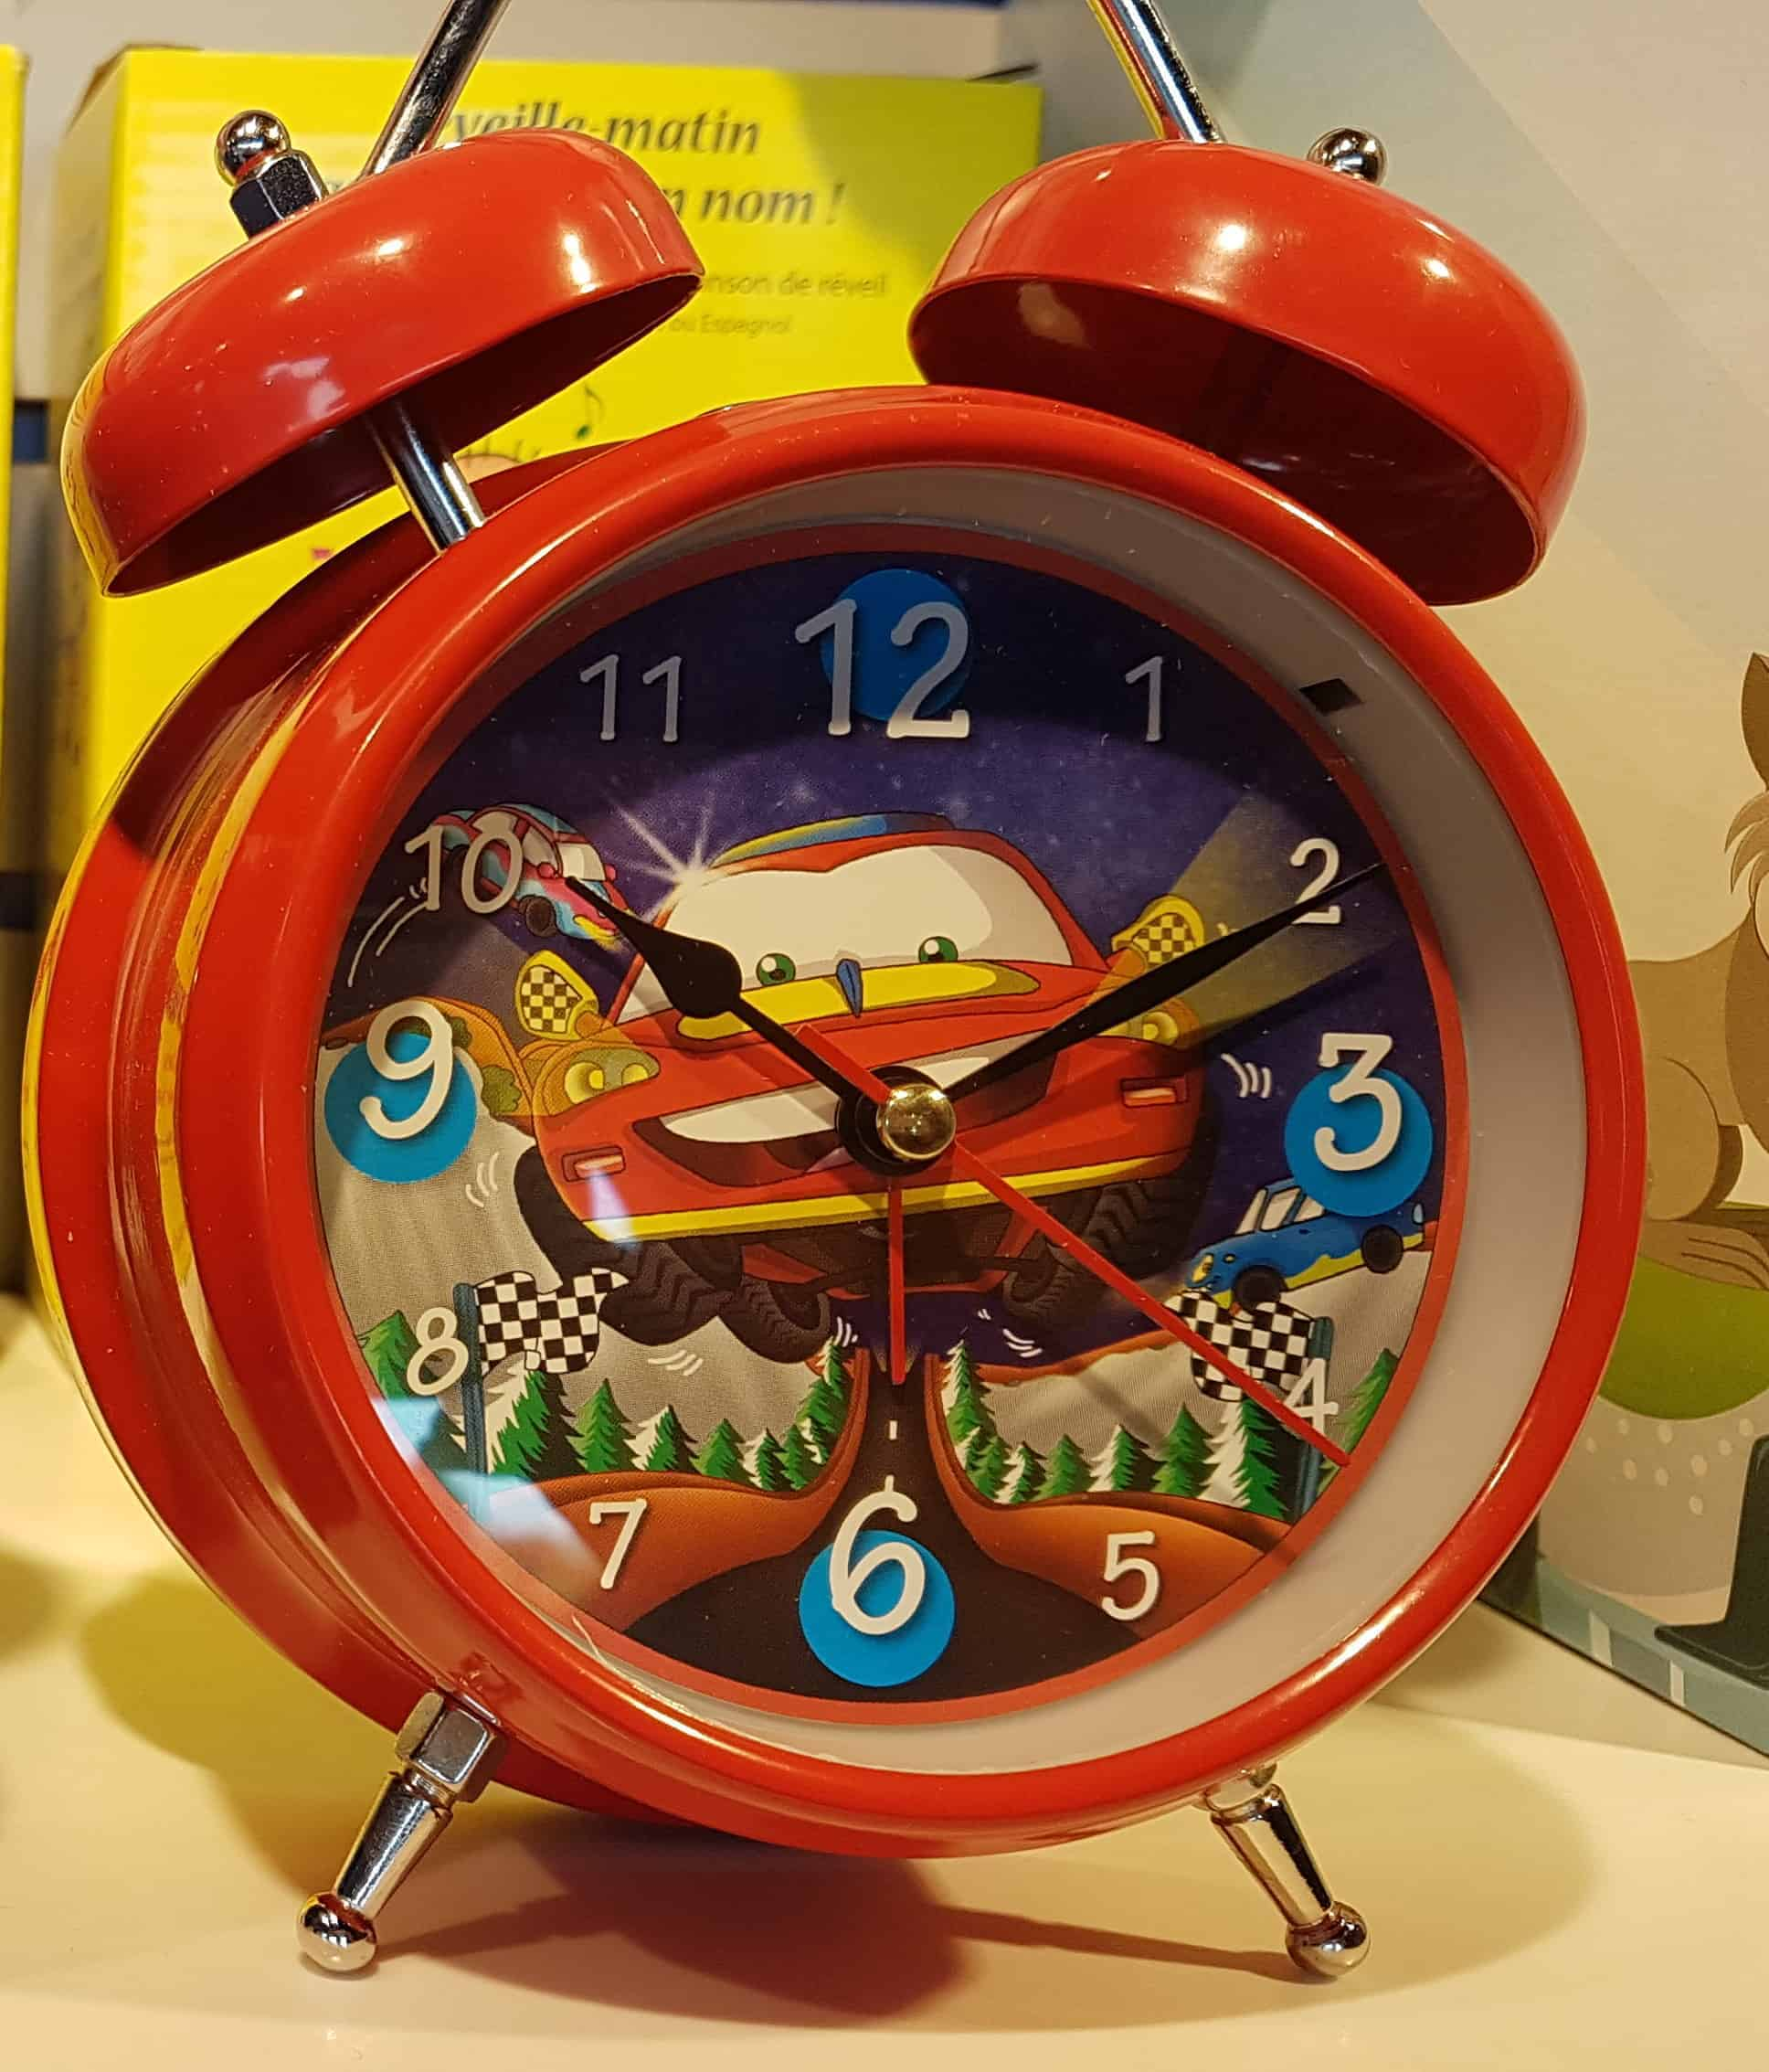 Personalized Singing Alarm Clock-Red Disney CARS face, sings your name in a wake up song